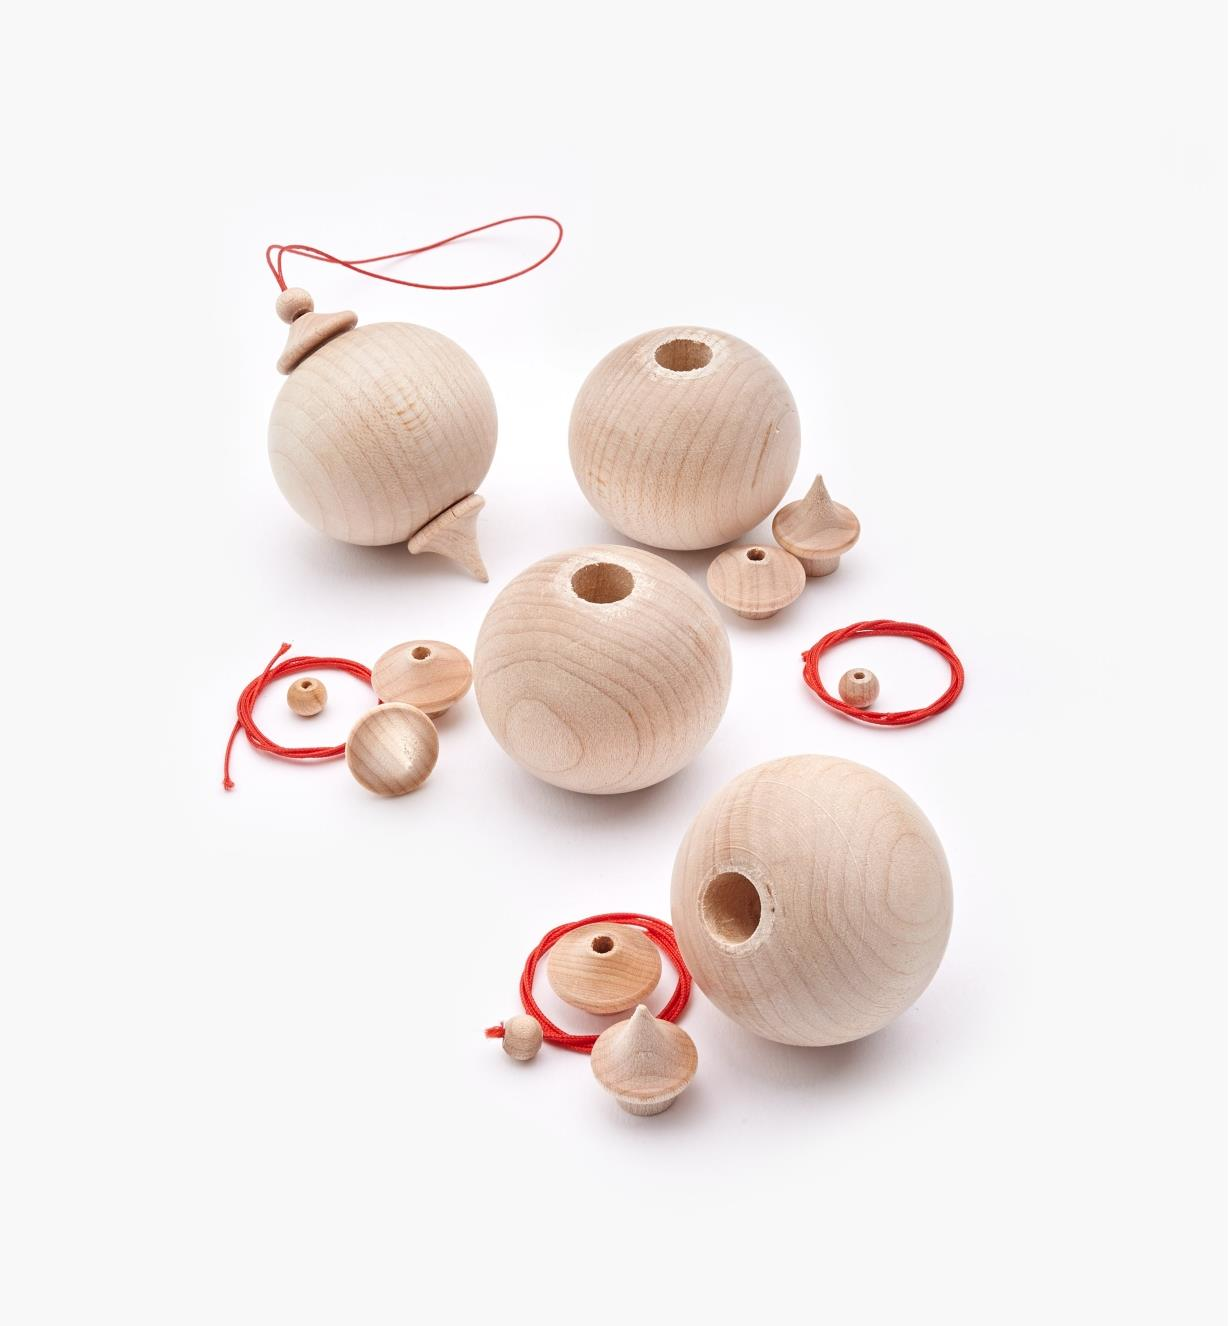 09A1074 - Wooden Ornaments Kit, pkg. of 4